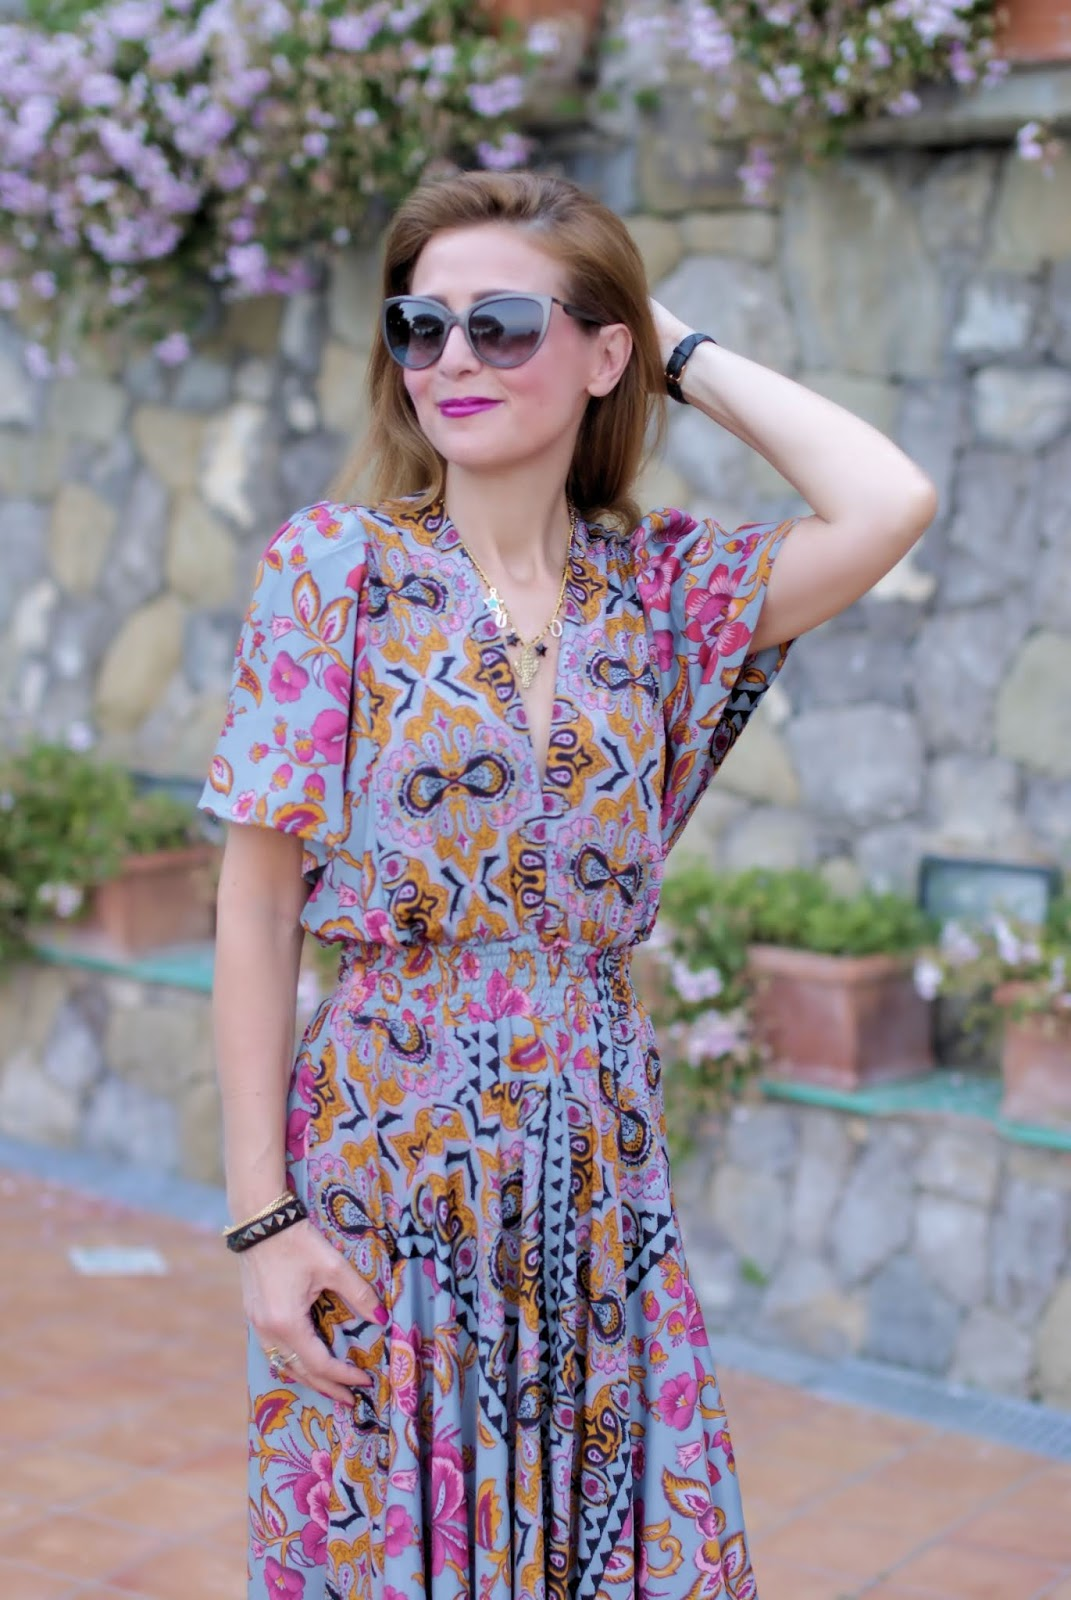 Bohemian Paisley dress on Fashion and Cookies fashion blog, fashion blogger style